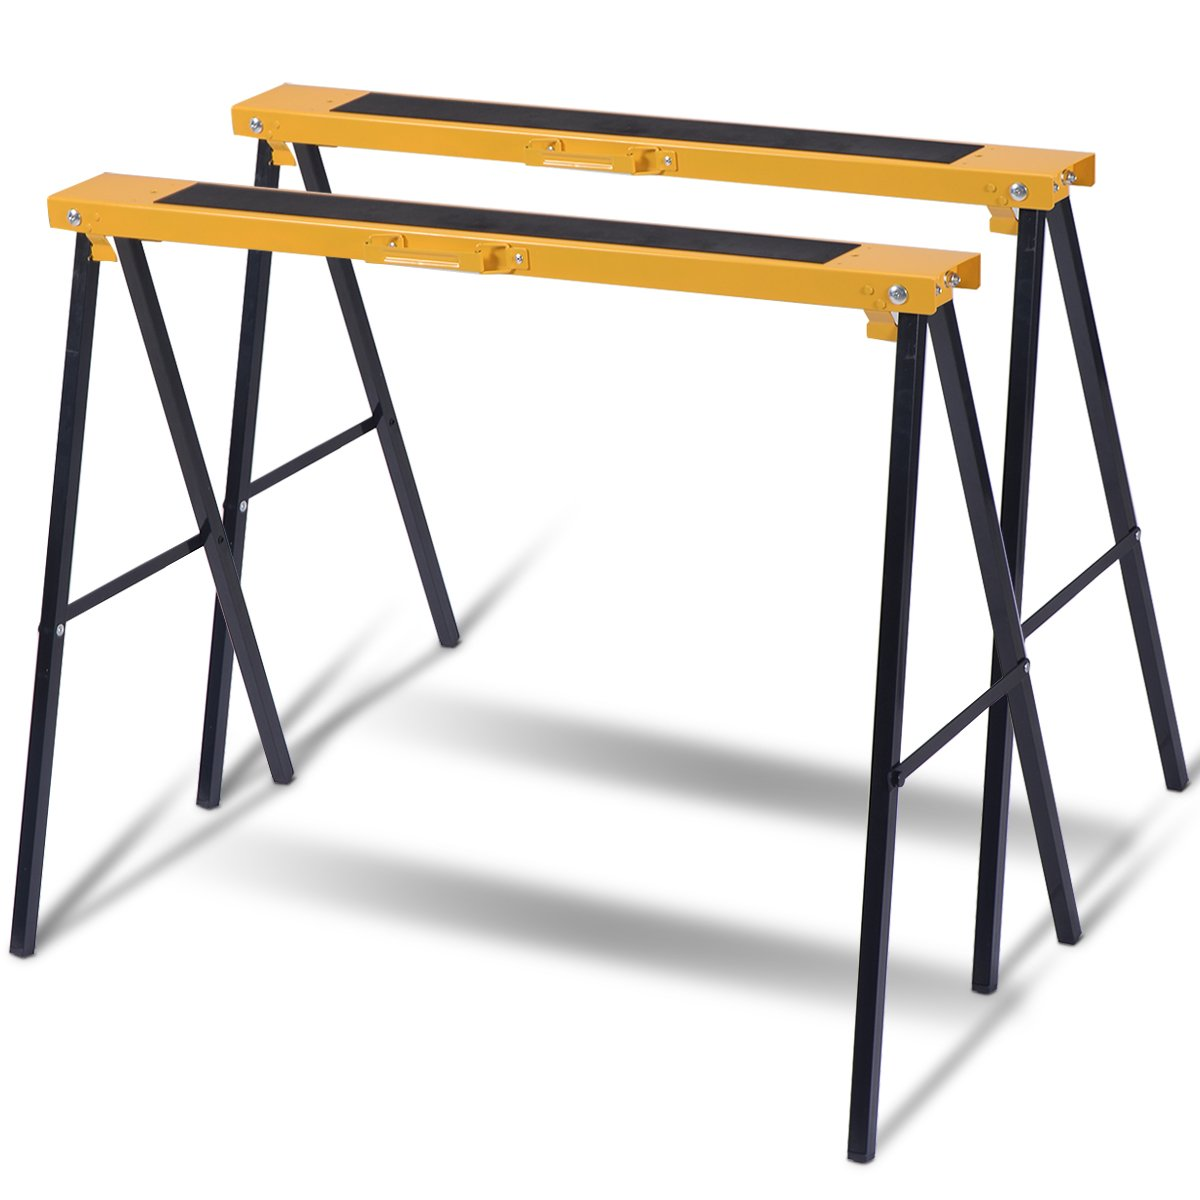 Goplus 2-Pack Sawhorse Pair Heavy Duty Folding Legs Portable Saw Horses Twin Pack, 275 lb Weight Capacity Each (Classic)